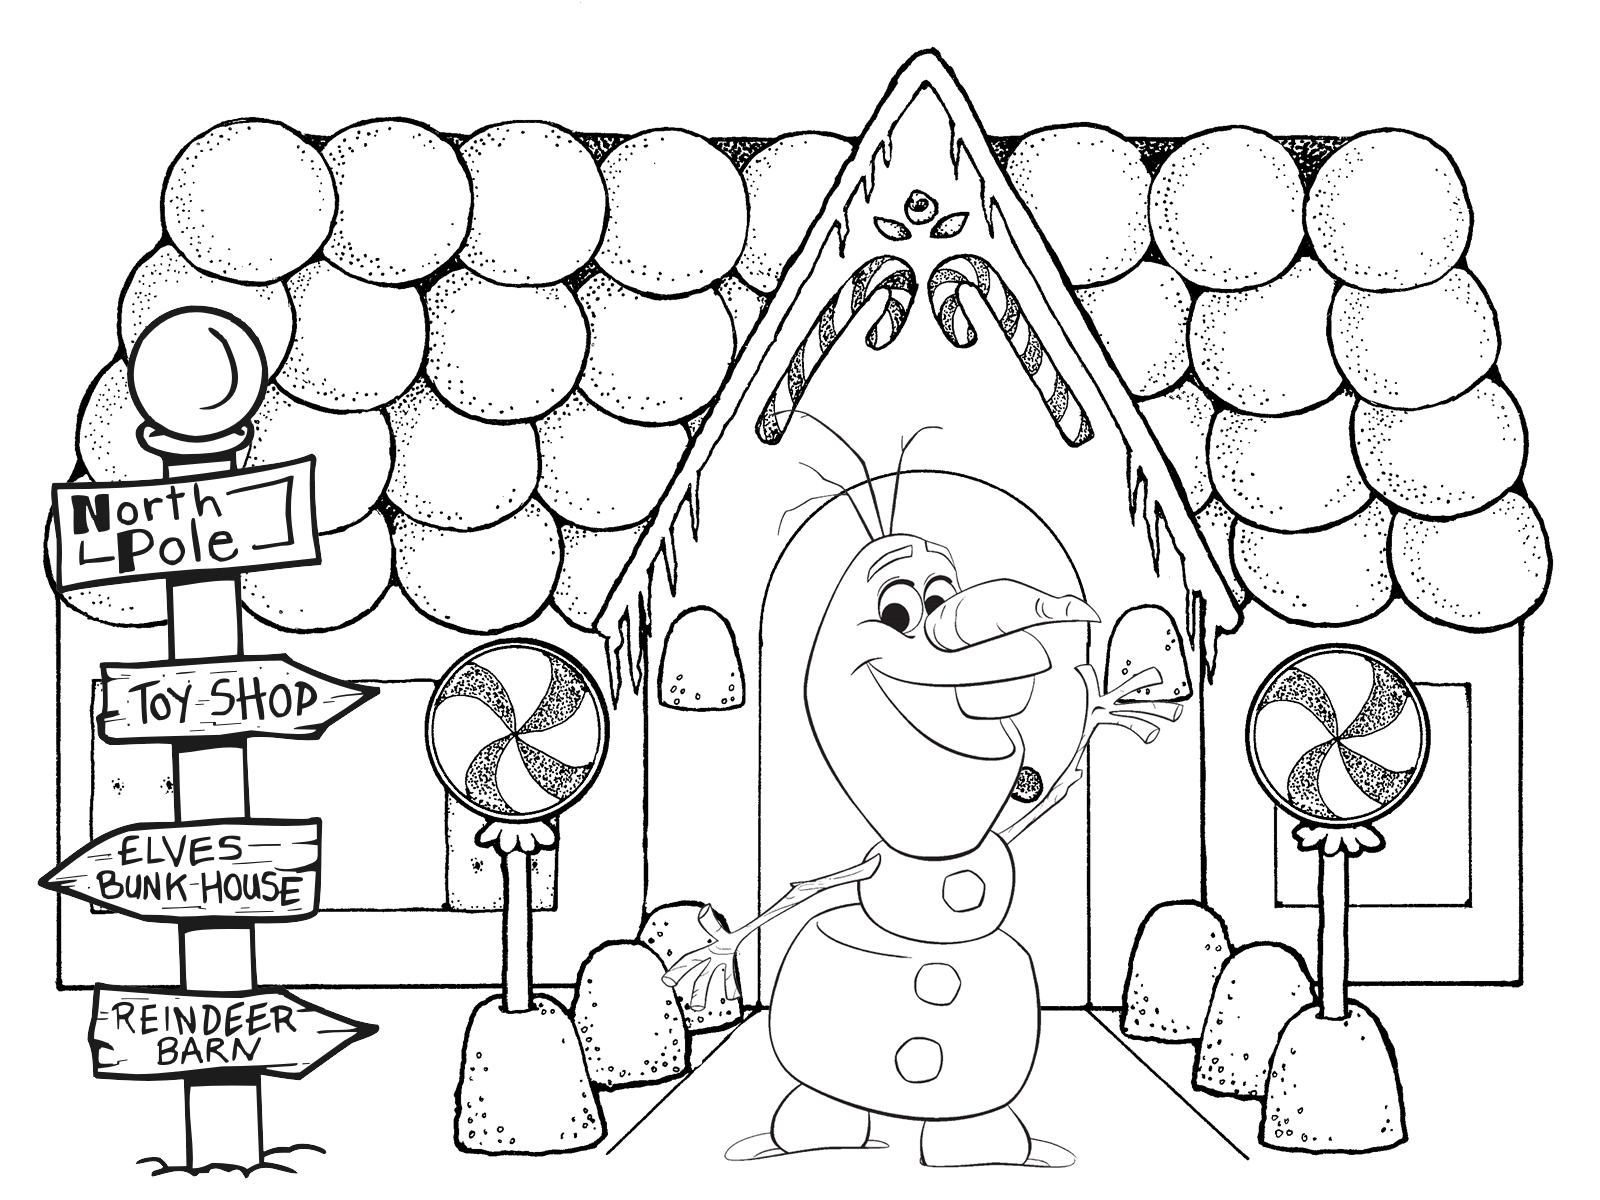 Gingerbread House Coloring Pages Pdf : Christmas gingerbread house coloring pages printable